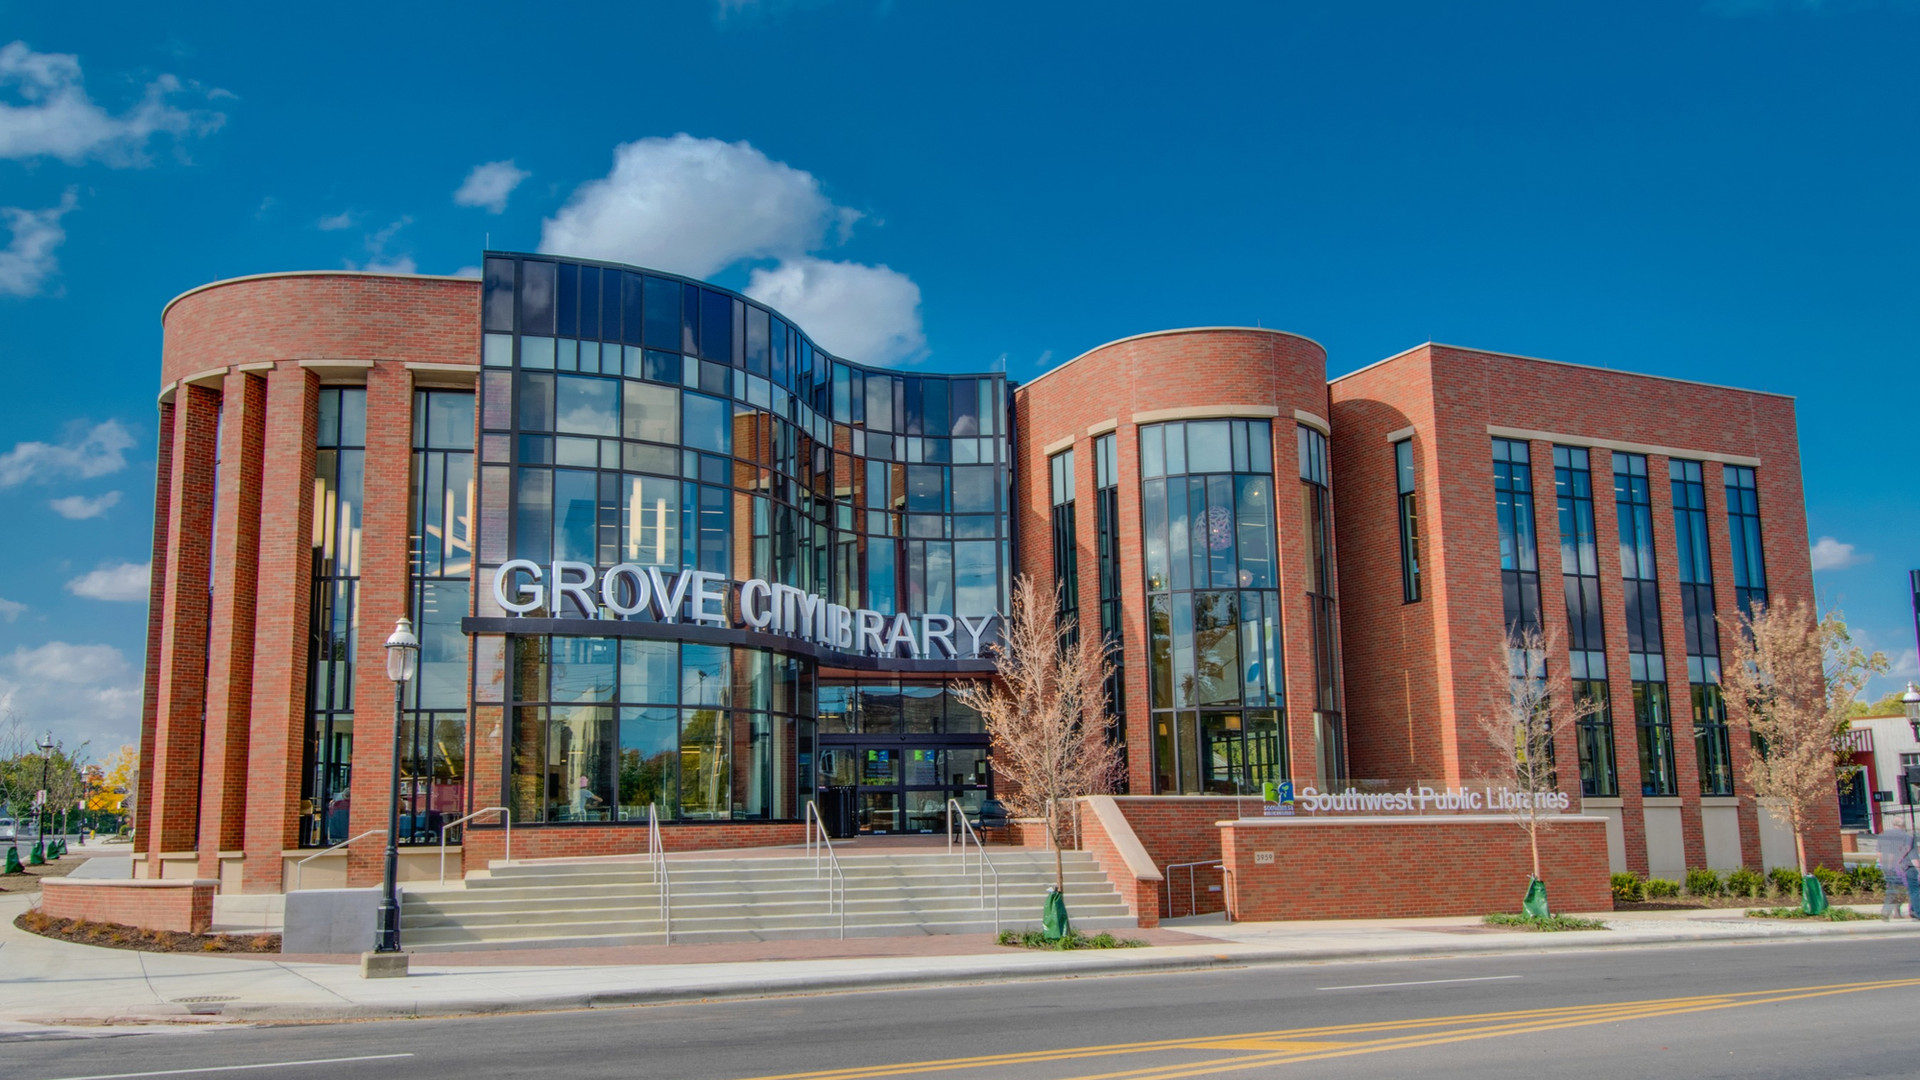 Grove City Library Southwest Public Library